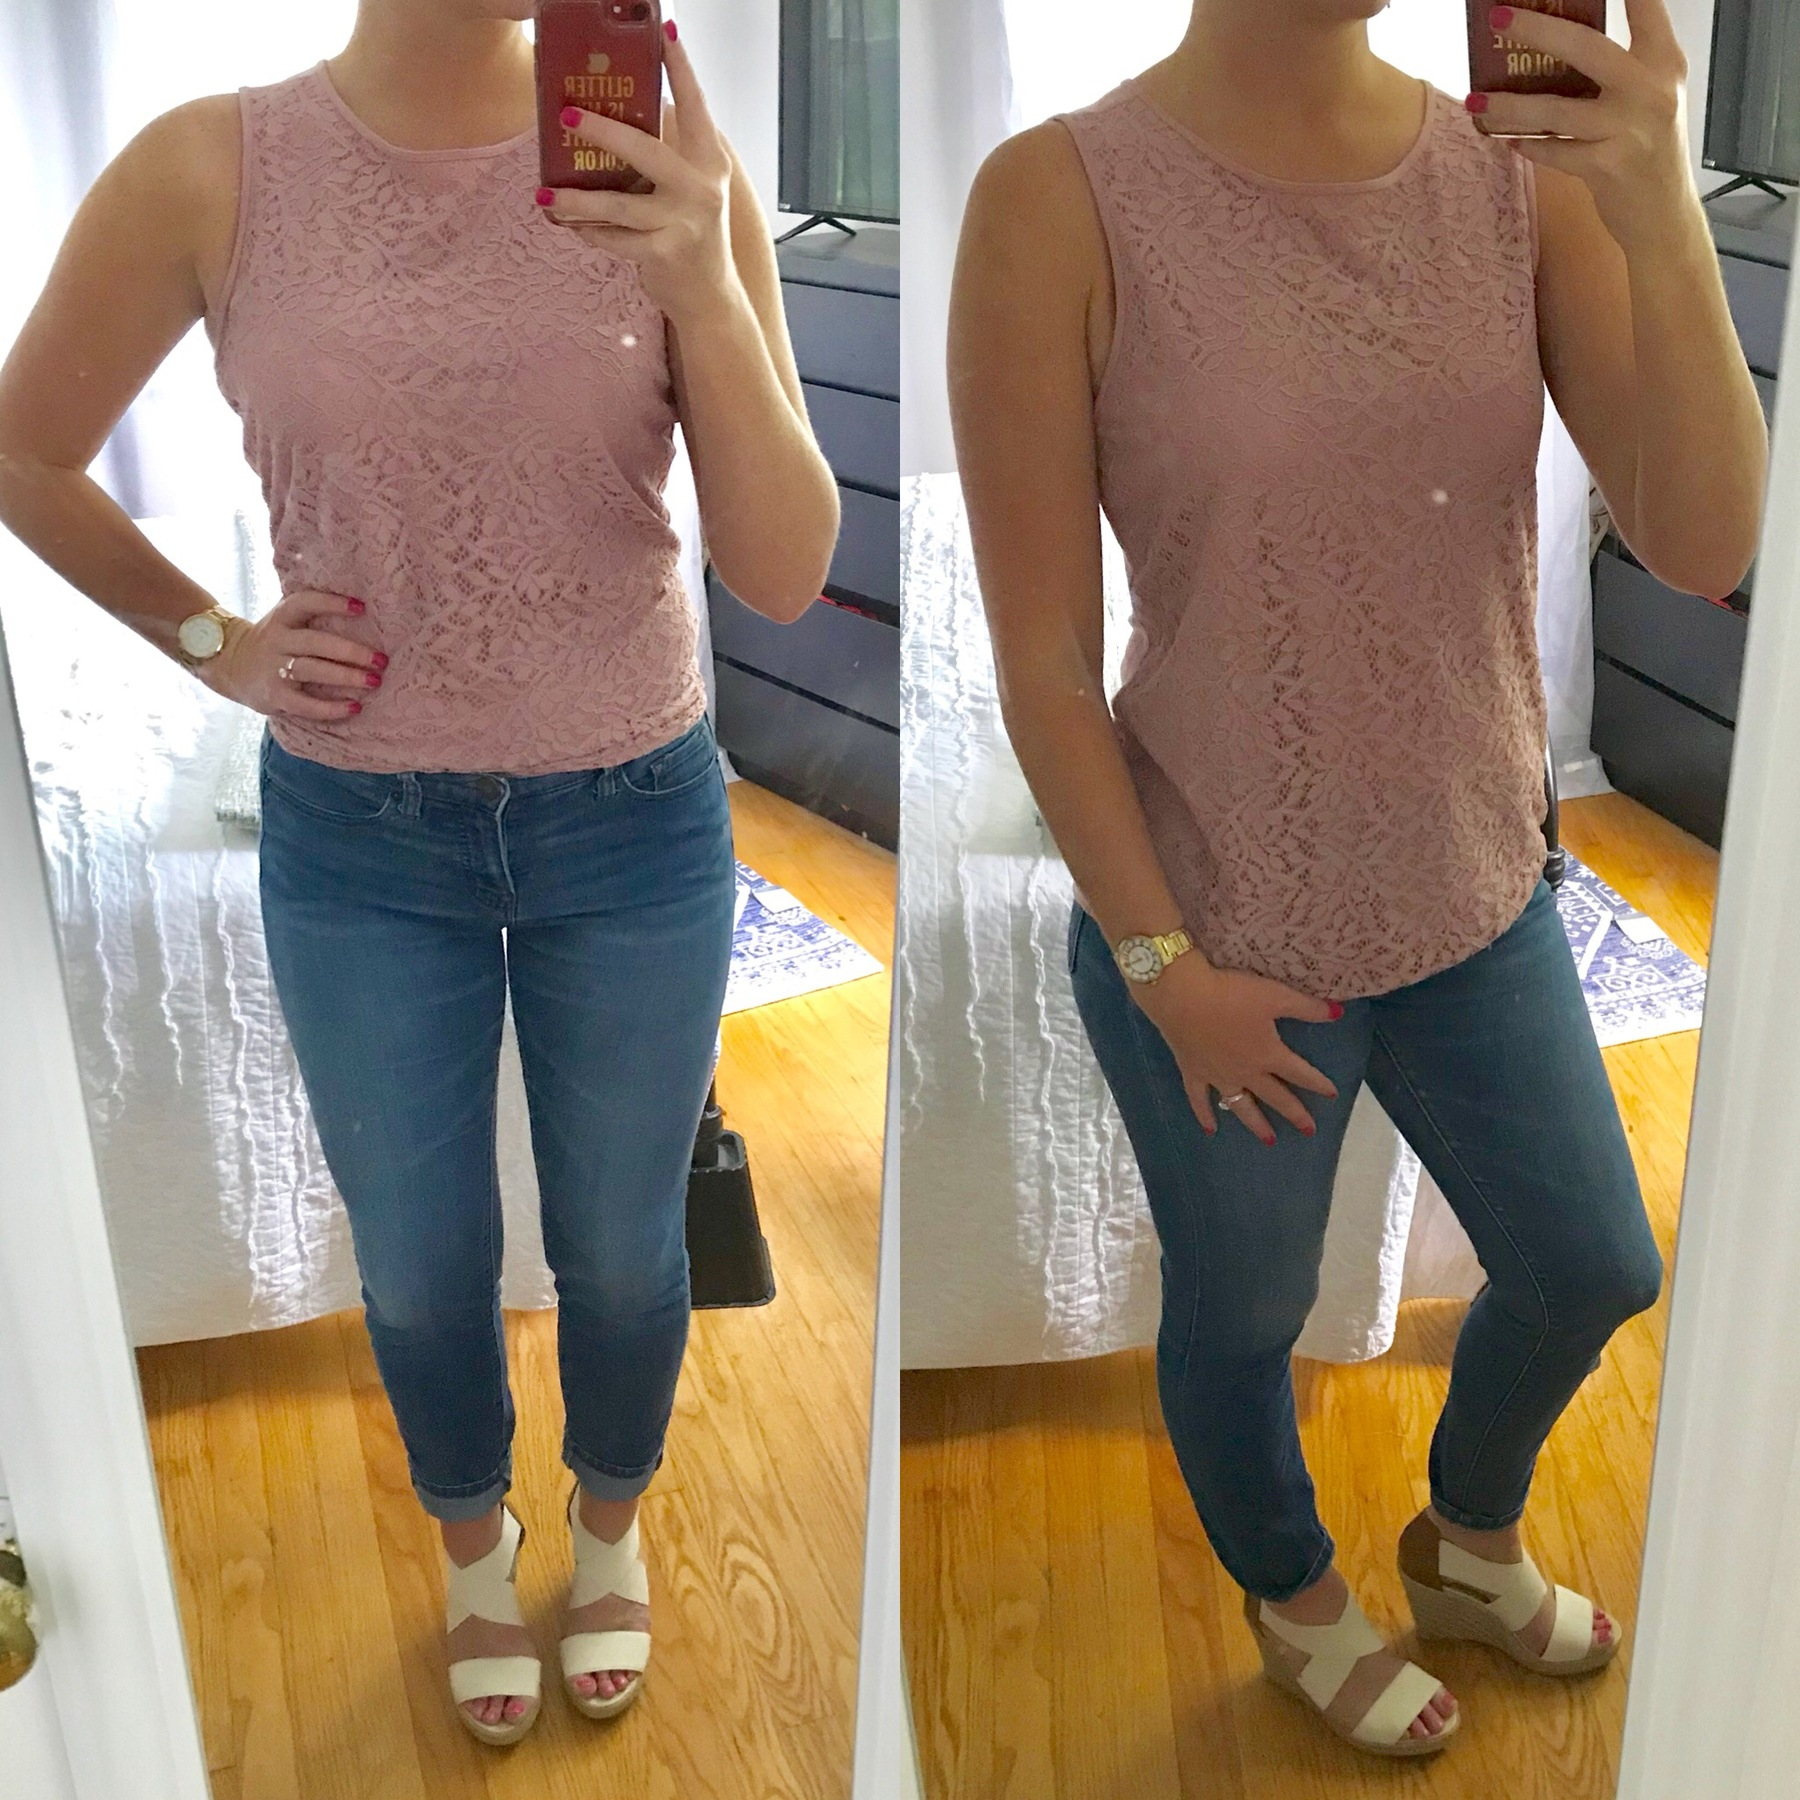 Karen's wears her lacy top and espadrilles with jeans